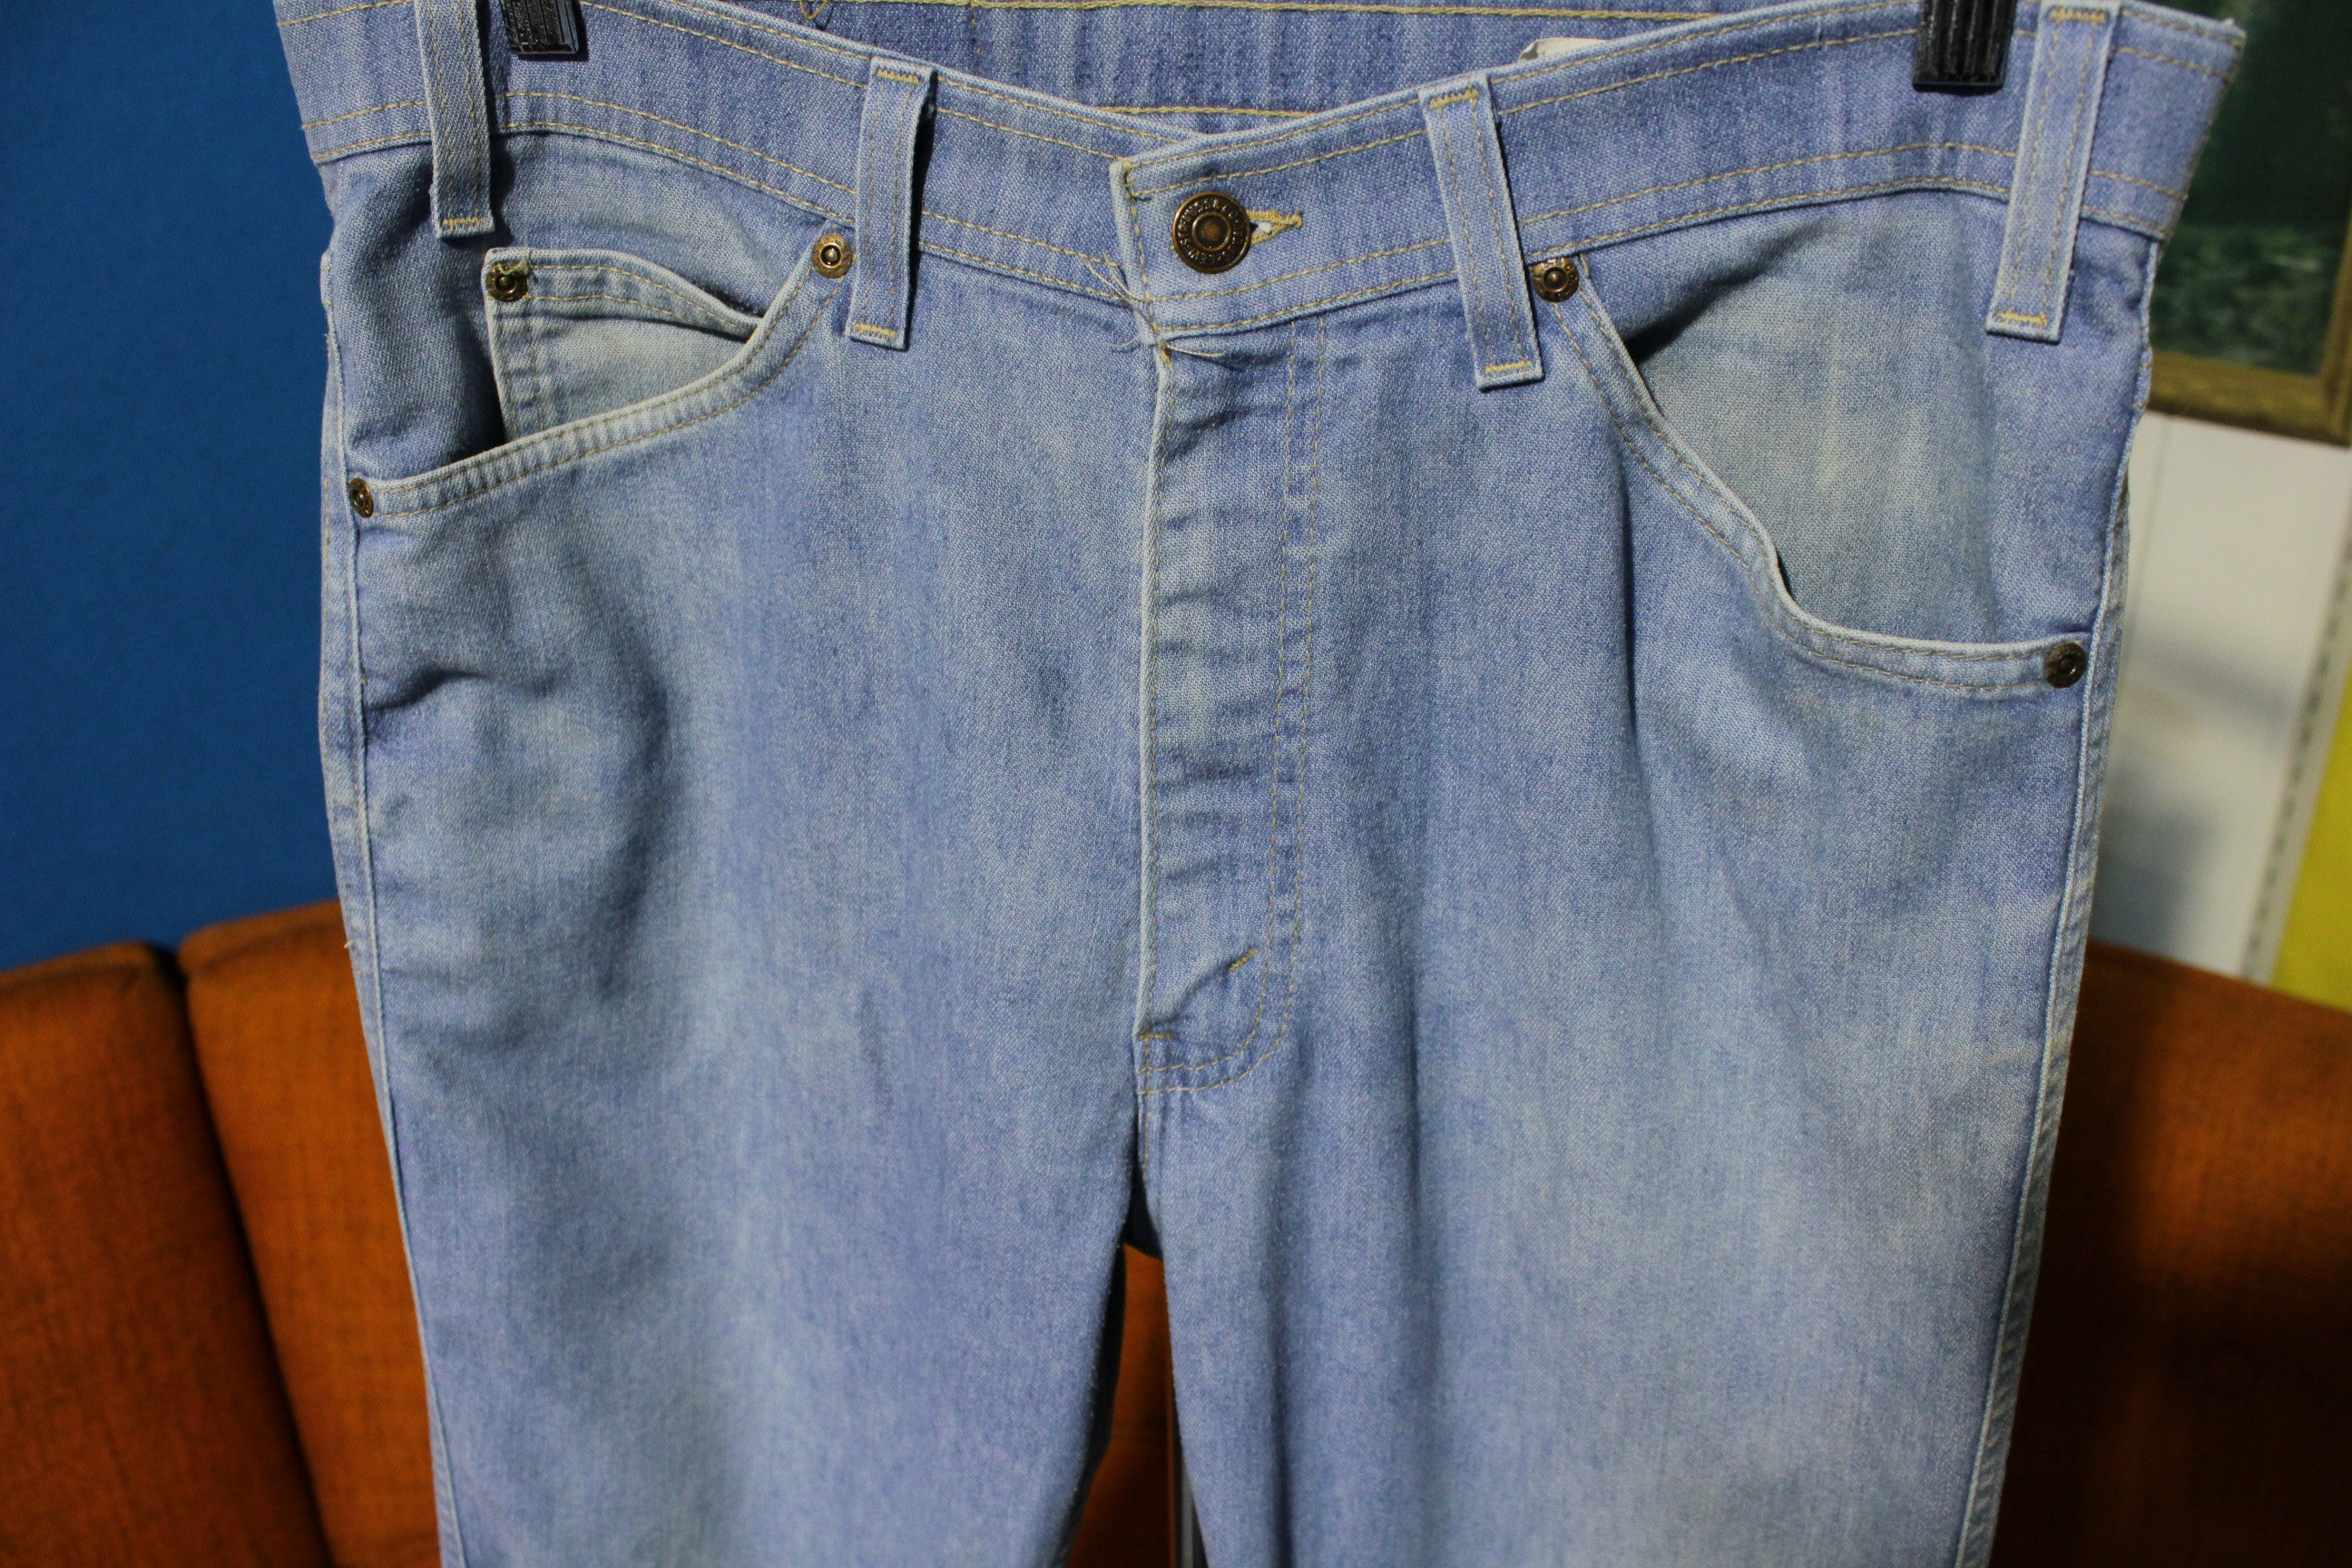 Levis Action Jeans Denim Vintage 1980's Pants Made in USA  32x30